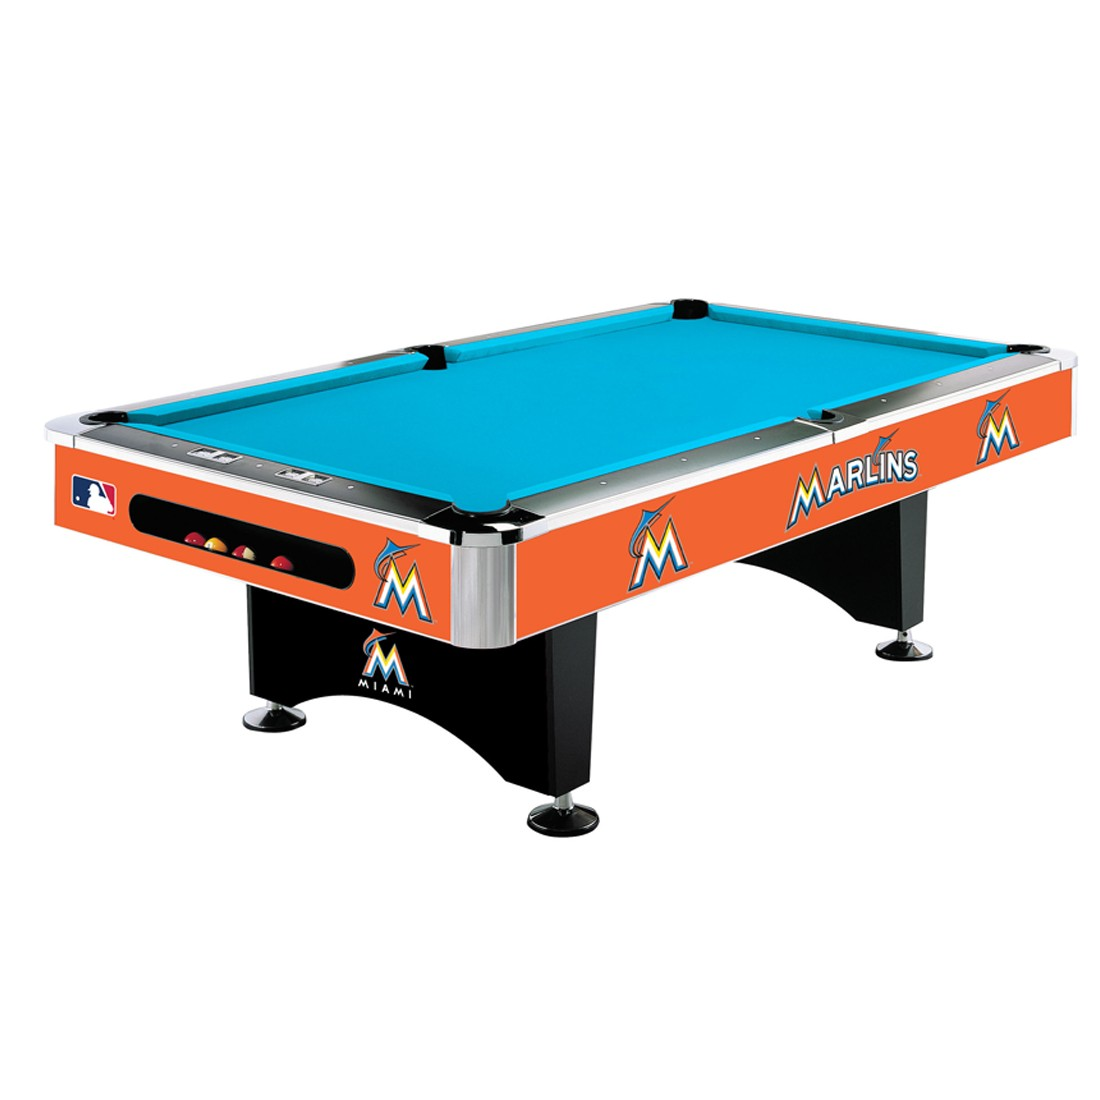 MIAMI MARLINS 8-FT. POOL TABLE